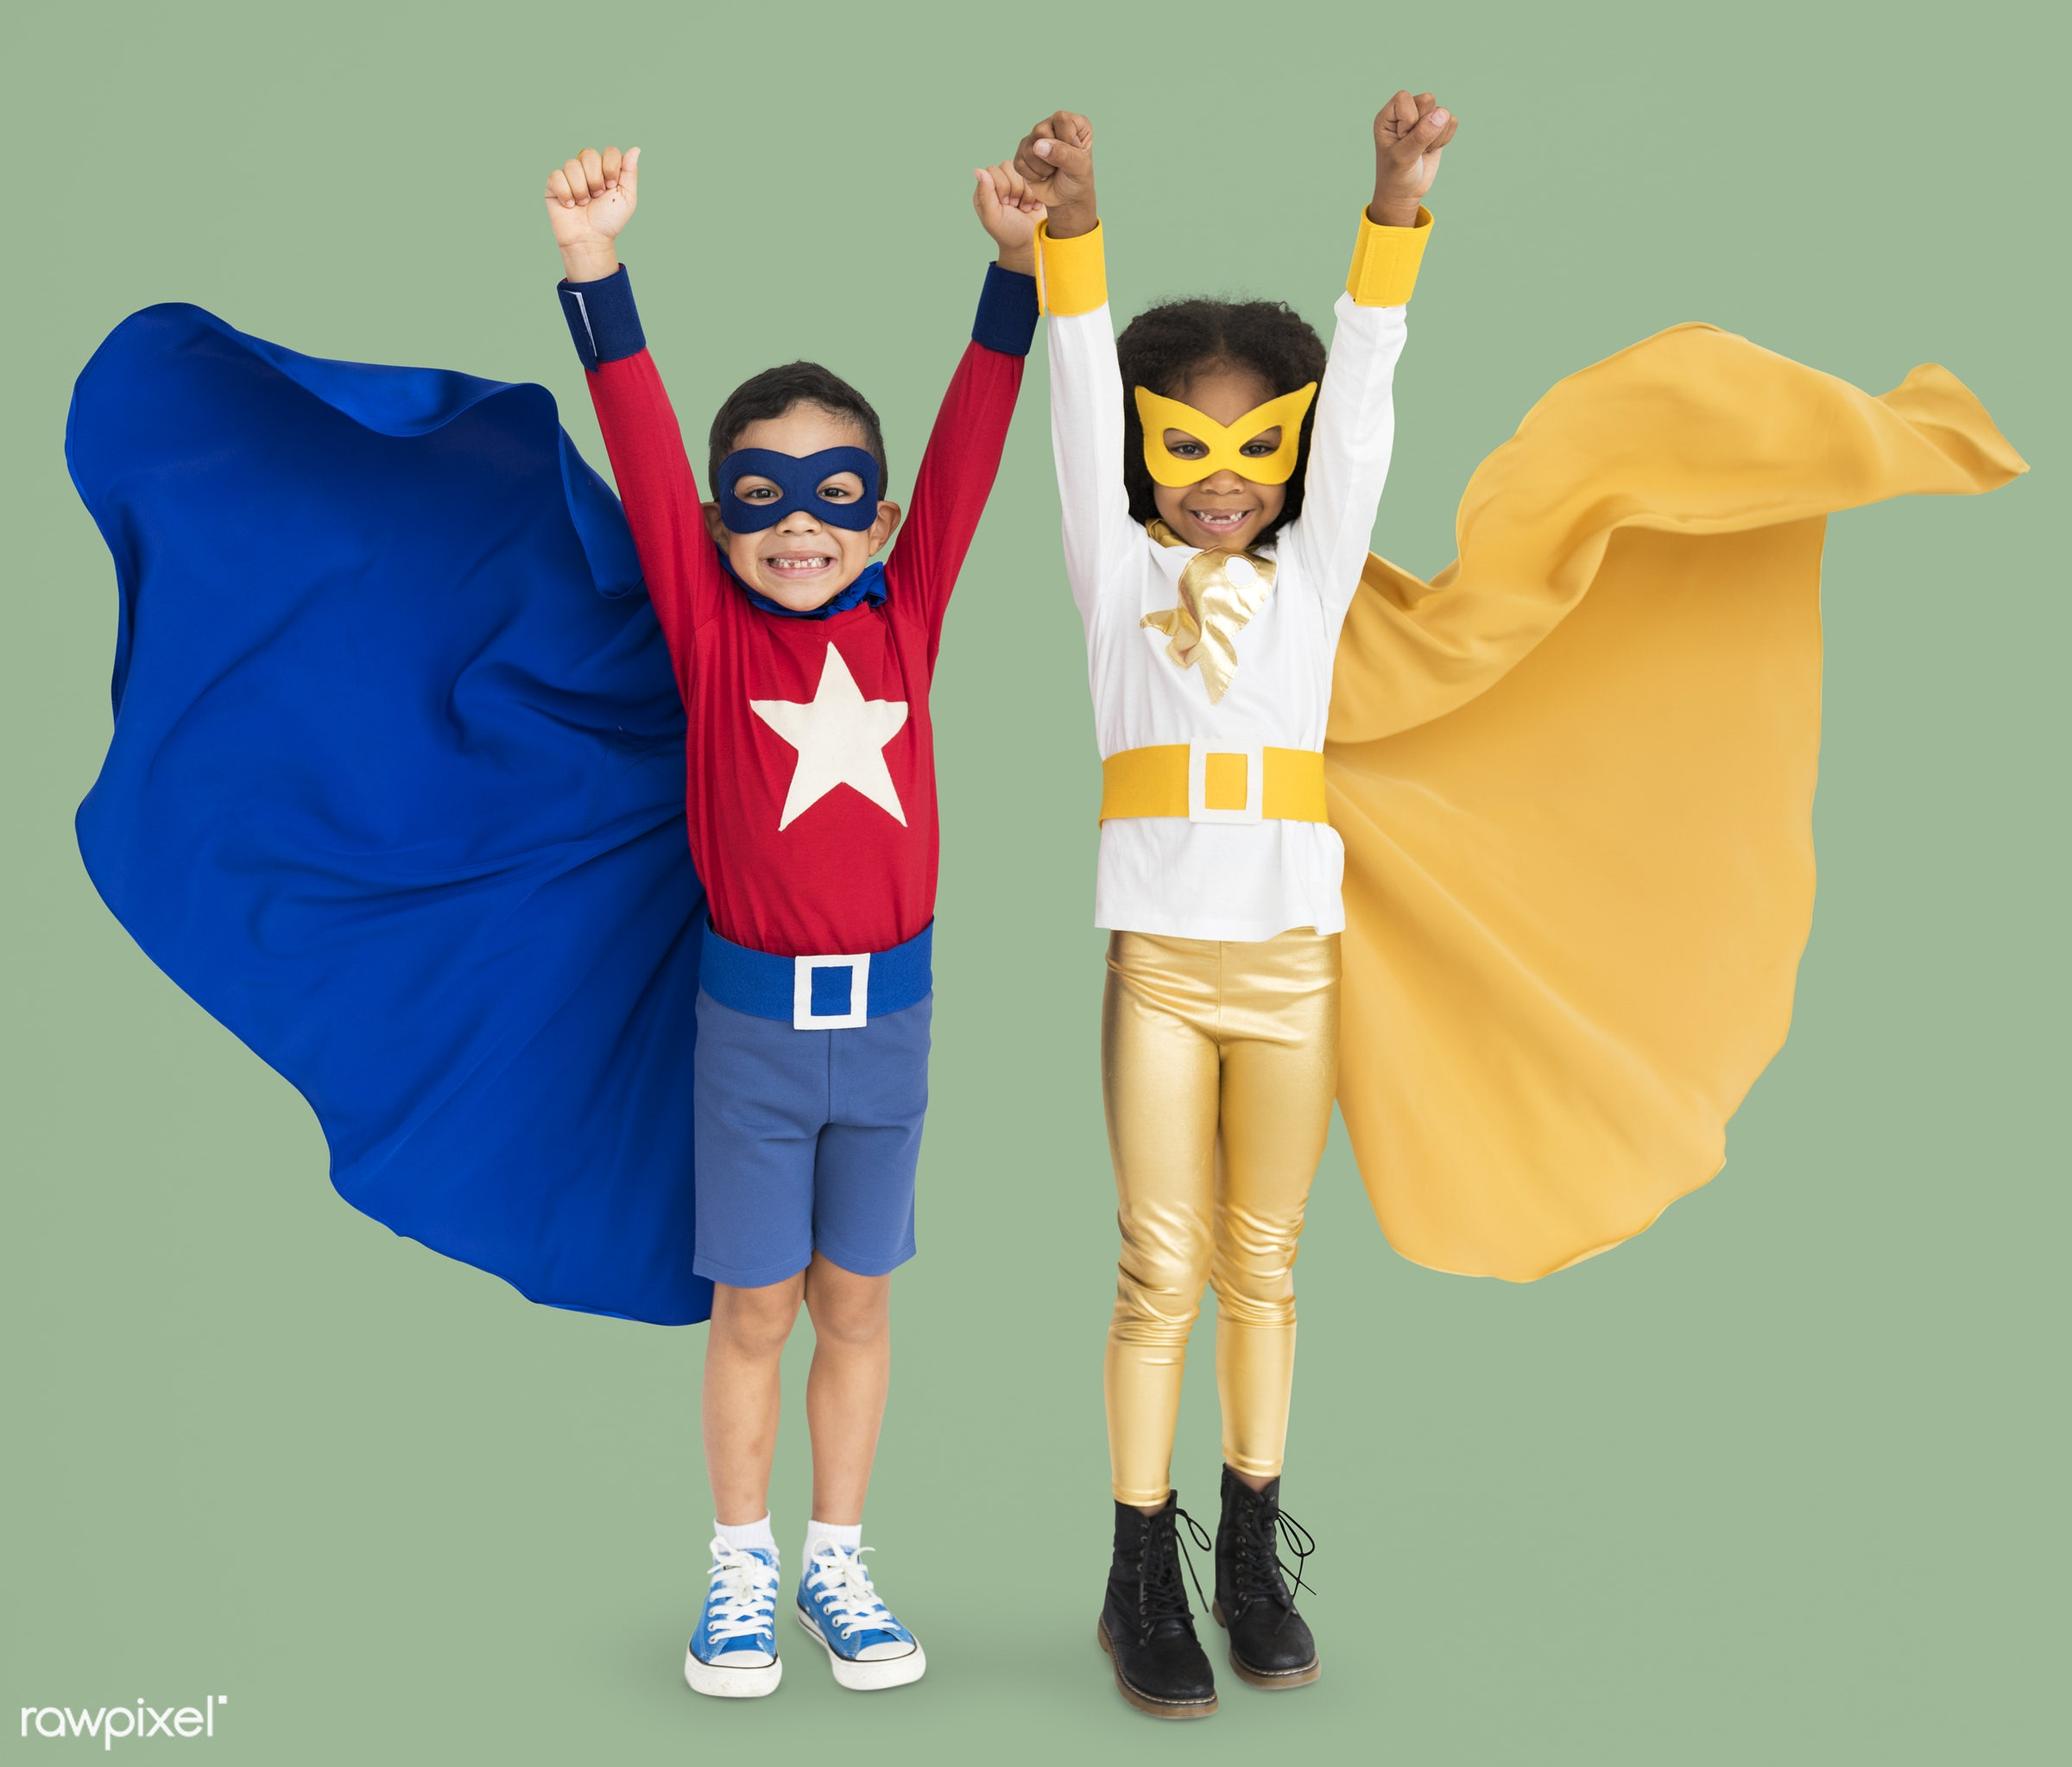 studio, expression, phone, person, cape, little, children, cute, people, together, kid, child, flying, girl, friends, happy...